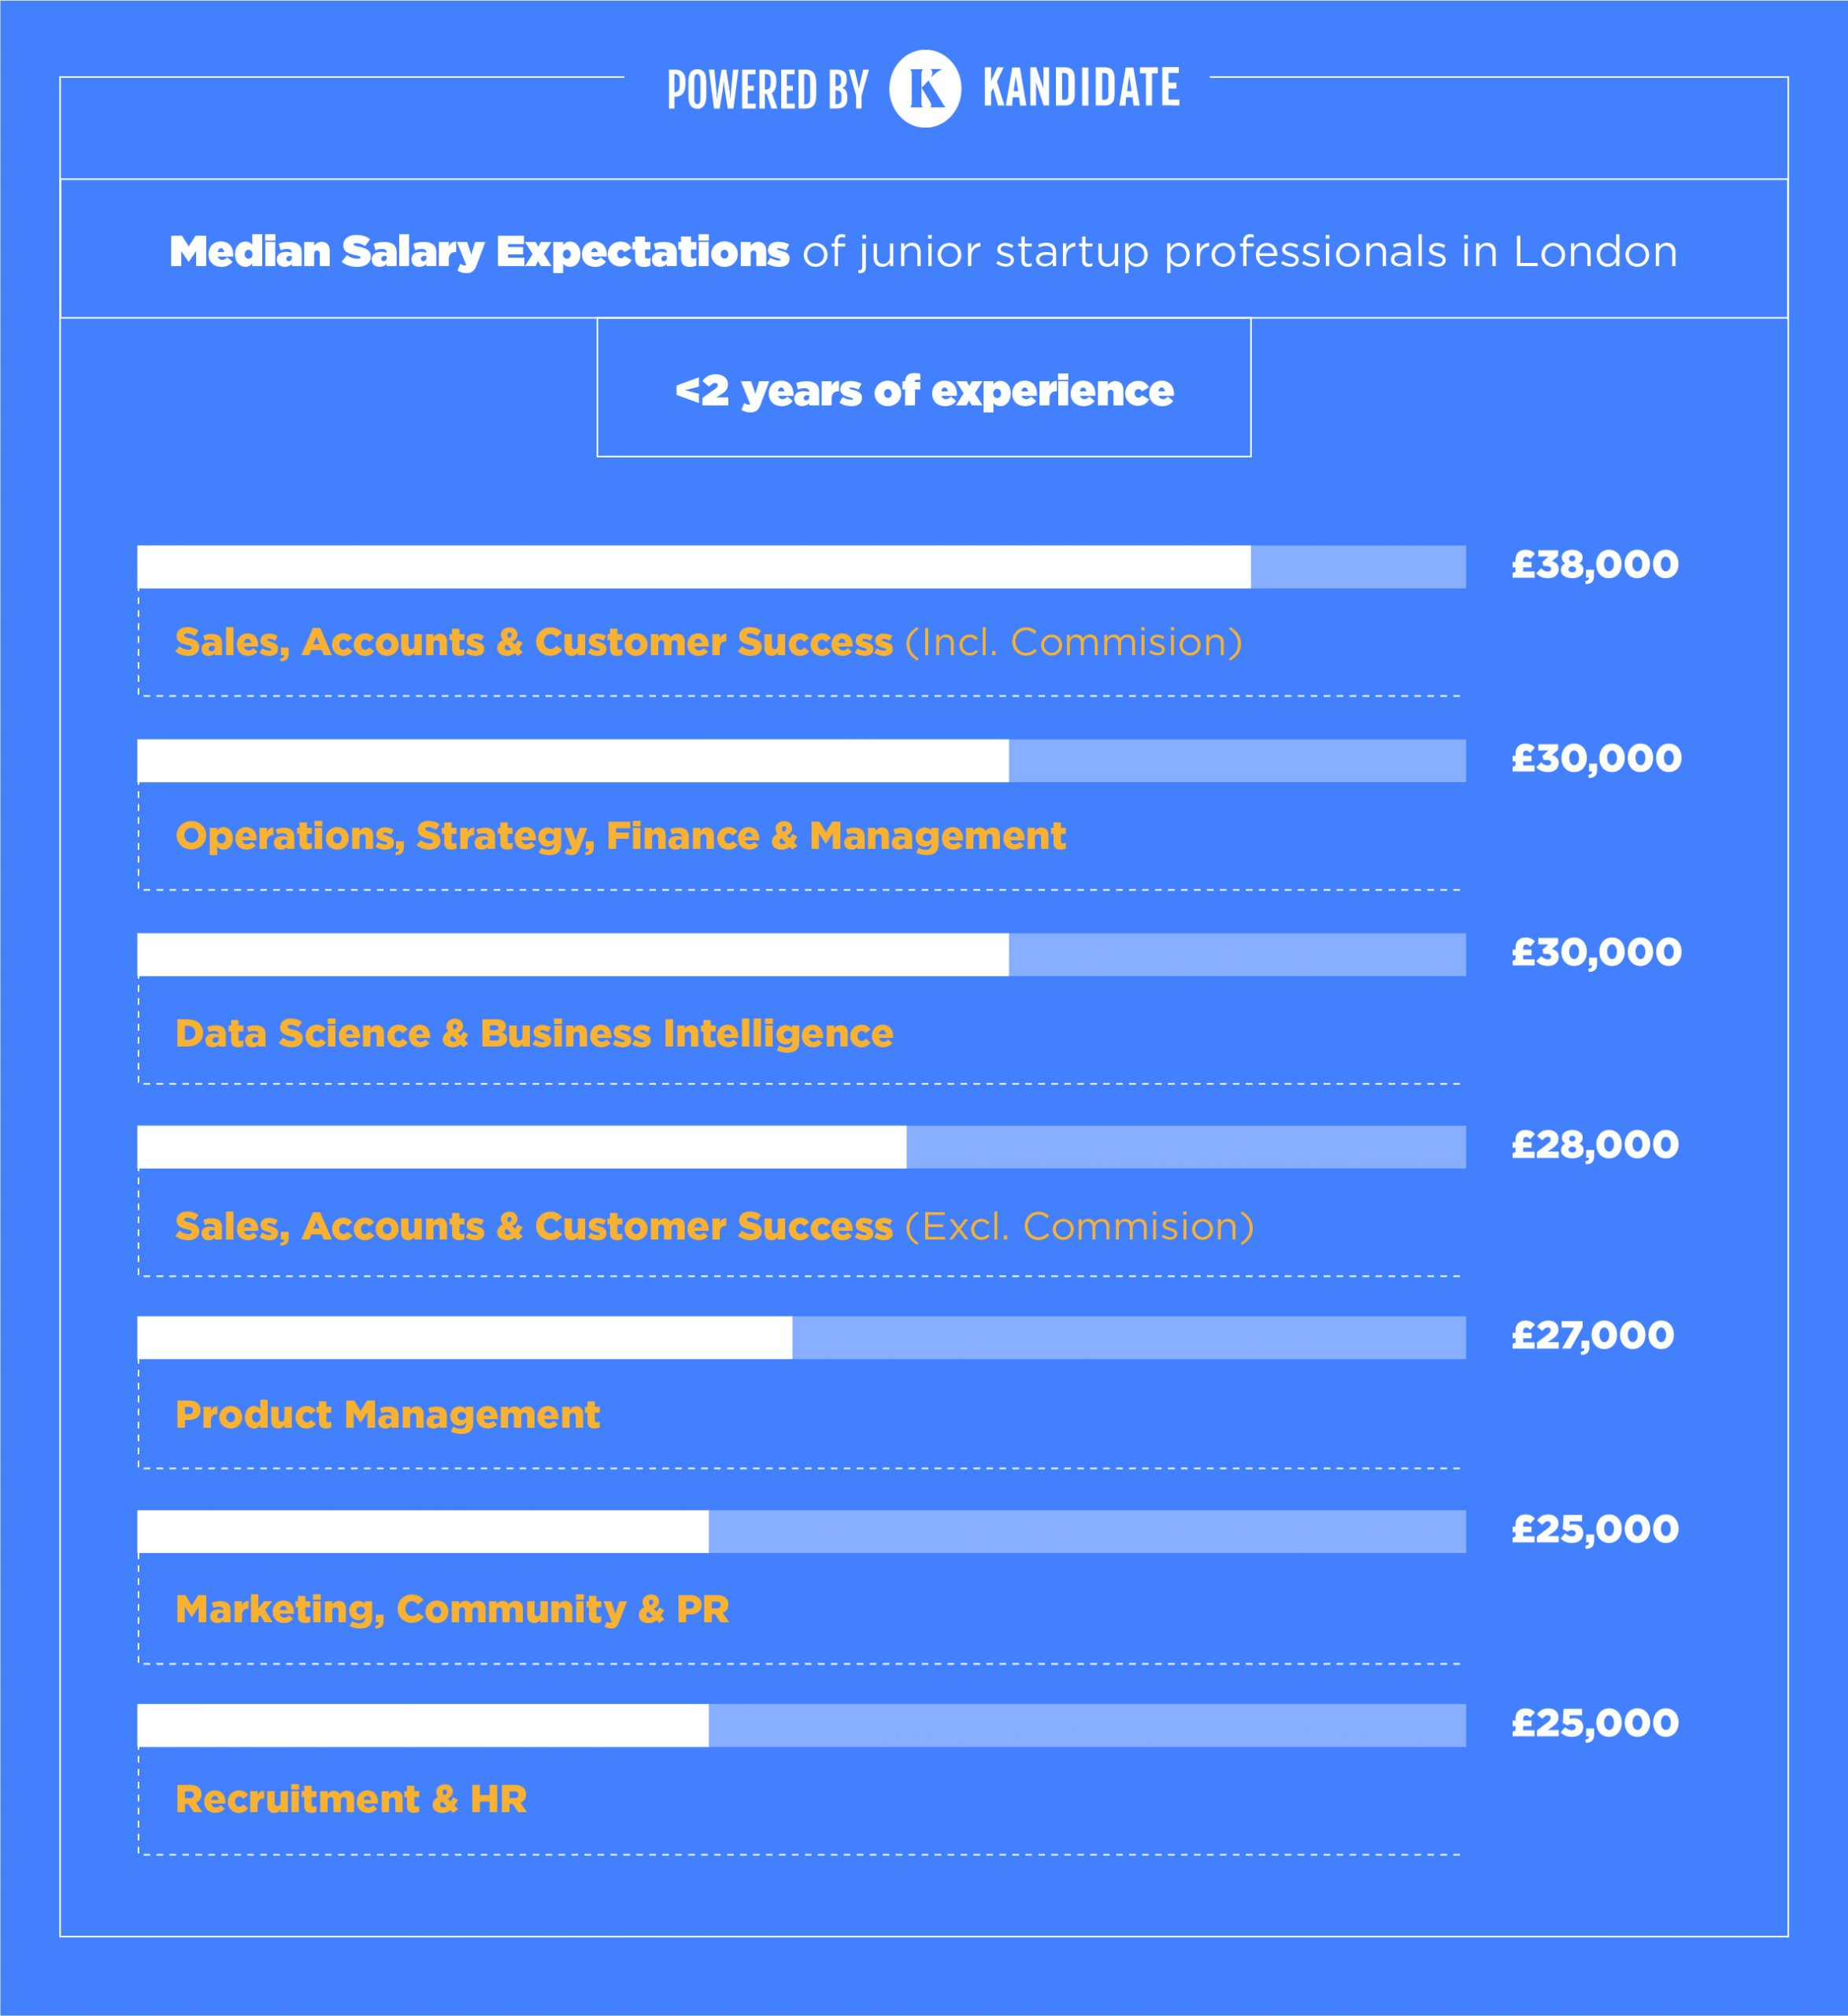 salary-expectations-by-subsector-junior-startup-professionals-london